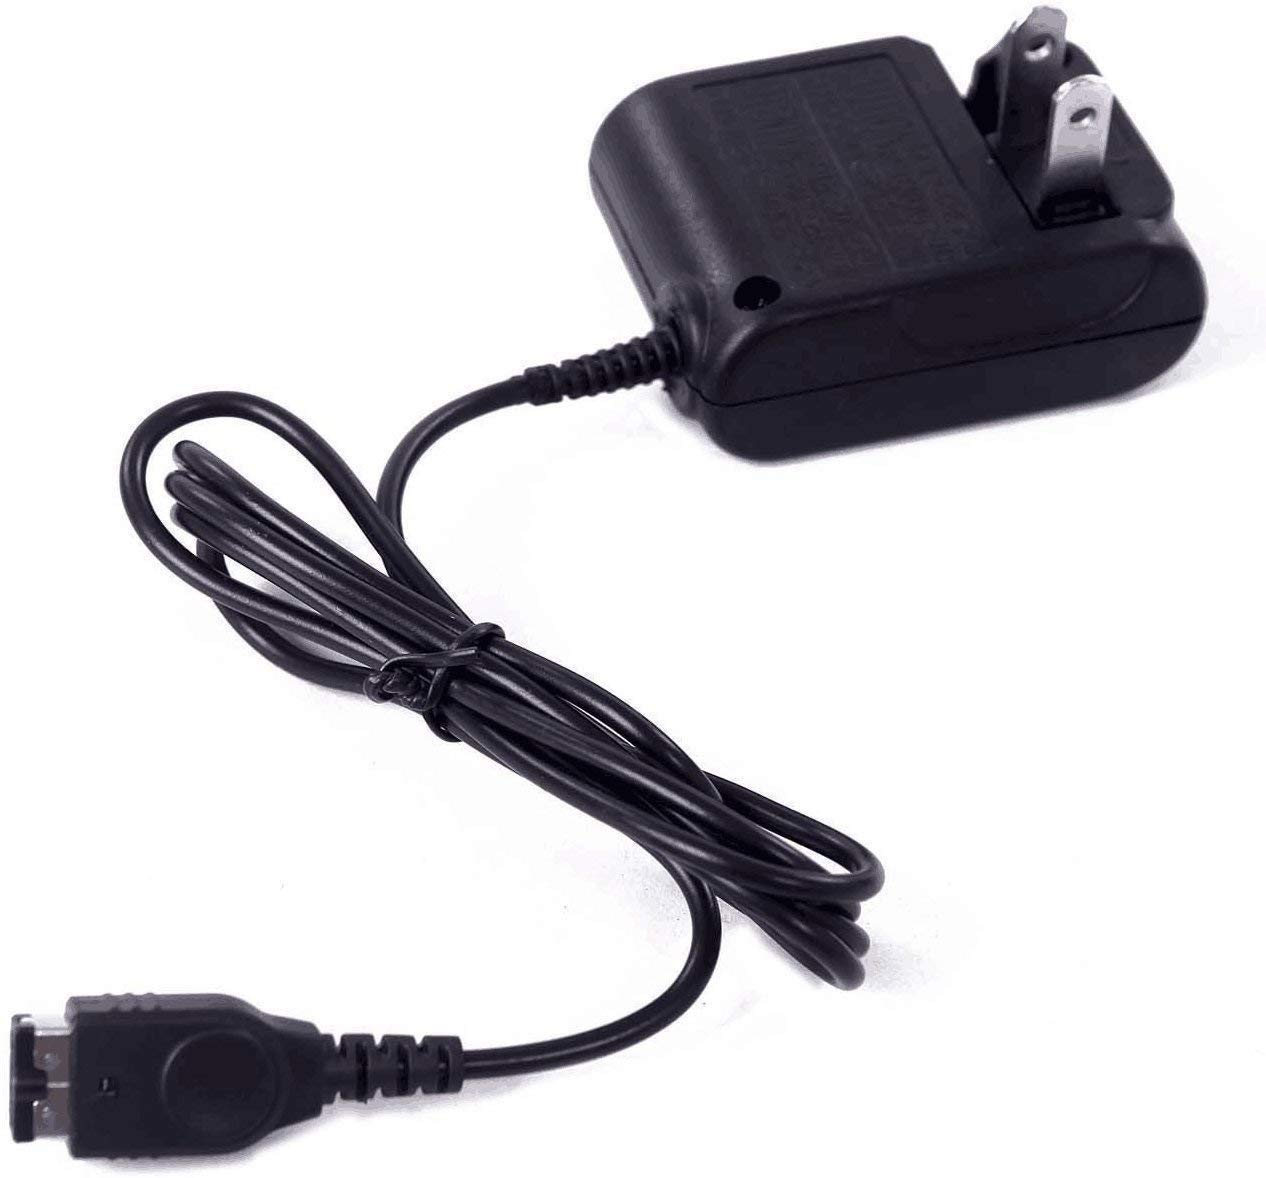 Charger for Gameboy Advance SP, AC Adapter for Nintendo NDS and Game Boy Advance SP Systems Power Charger, Wall Travel Charger Power Cord Charging Cable 5.2V 450mA for GBA SP